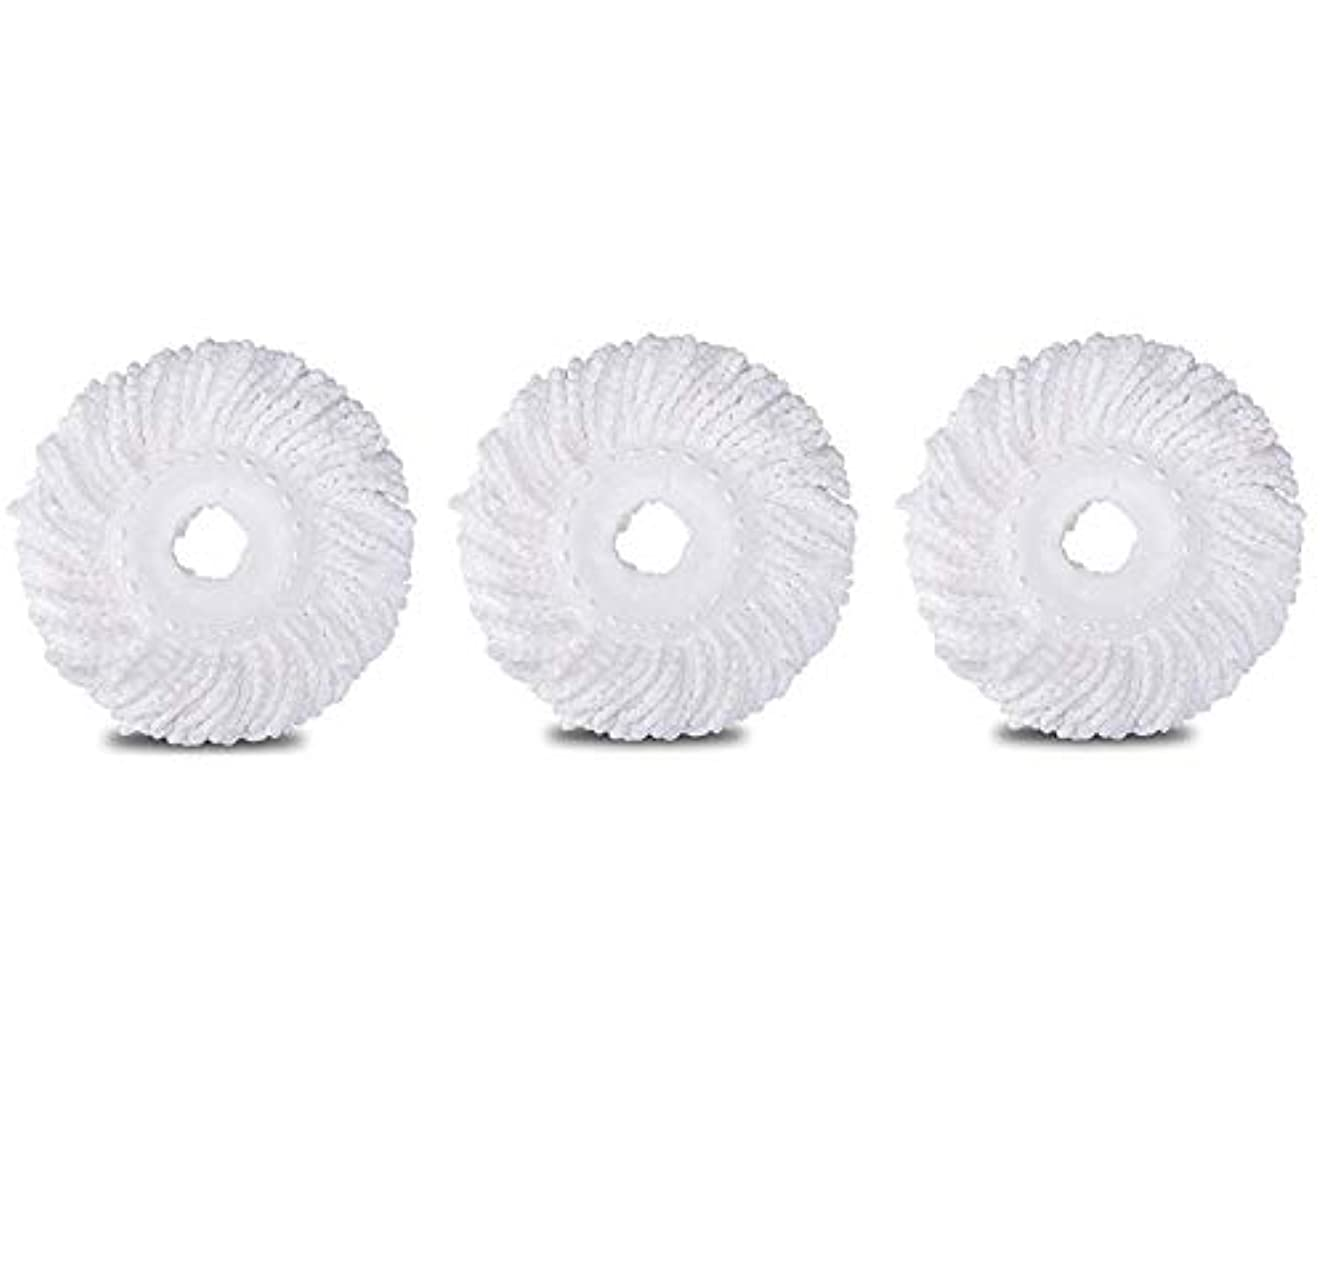 3 Pack Hurricane Compatible Mop Head 360° Spin Magic Mop Head Replacement Mop Head Round Shape Microfibers Mop Head Refill Replacement for Hurricane Mopnado EGOFLEX Hapinnex Standard Size